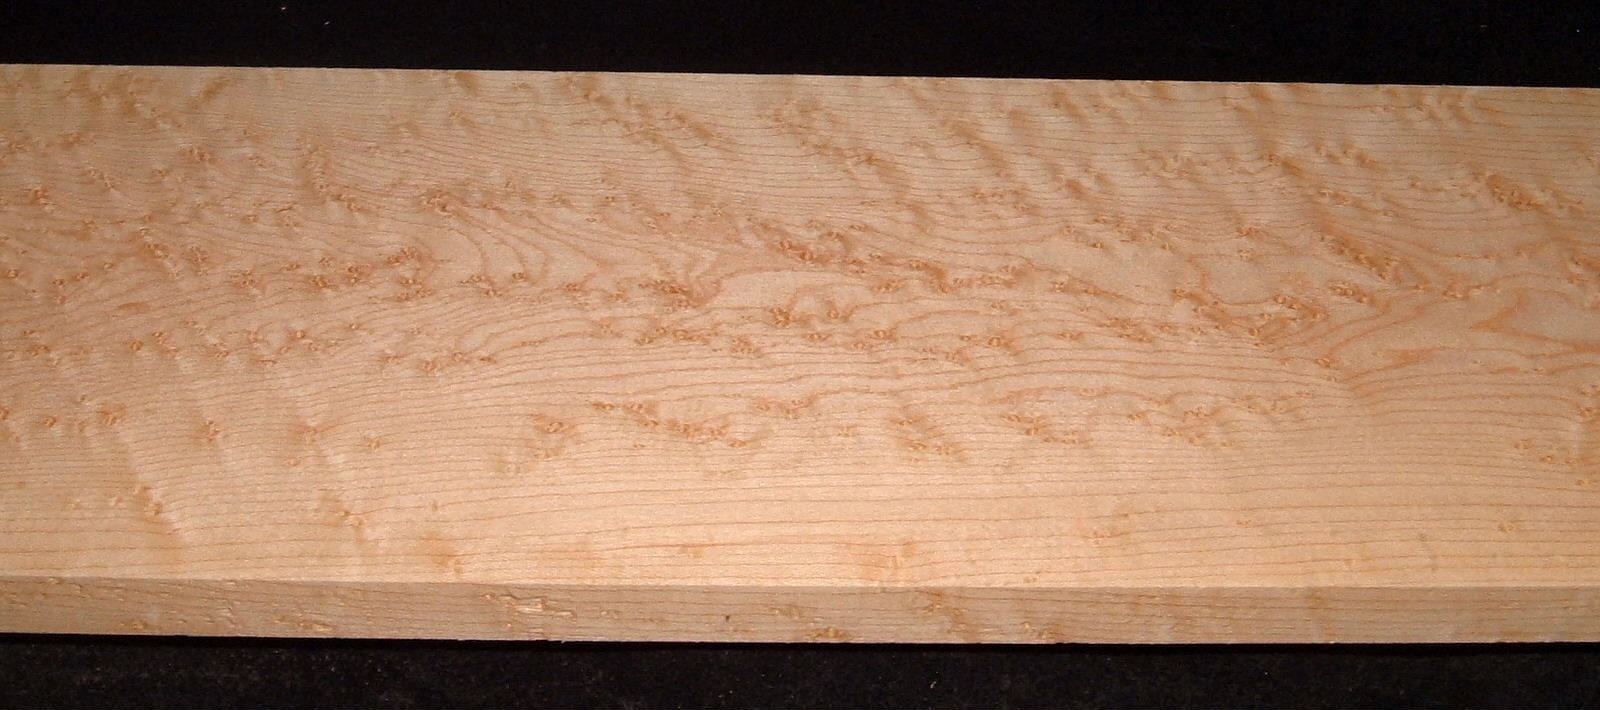 BEM2103-44, +7/8x7-1/4x46, Quilted Birdseye Hard Maple